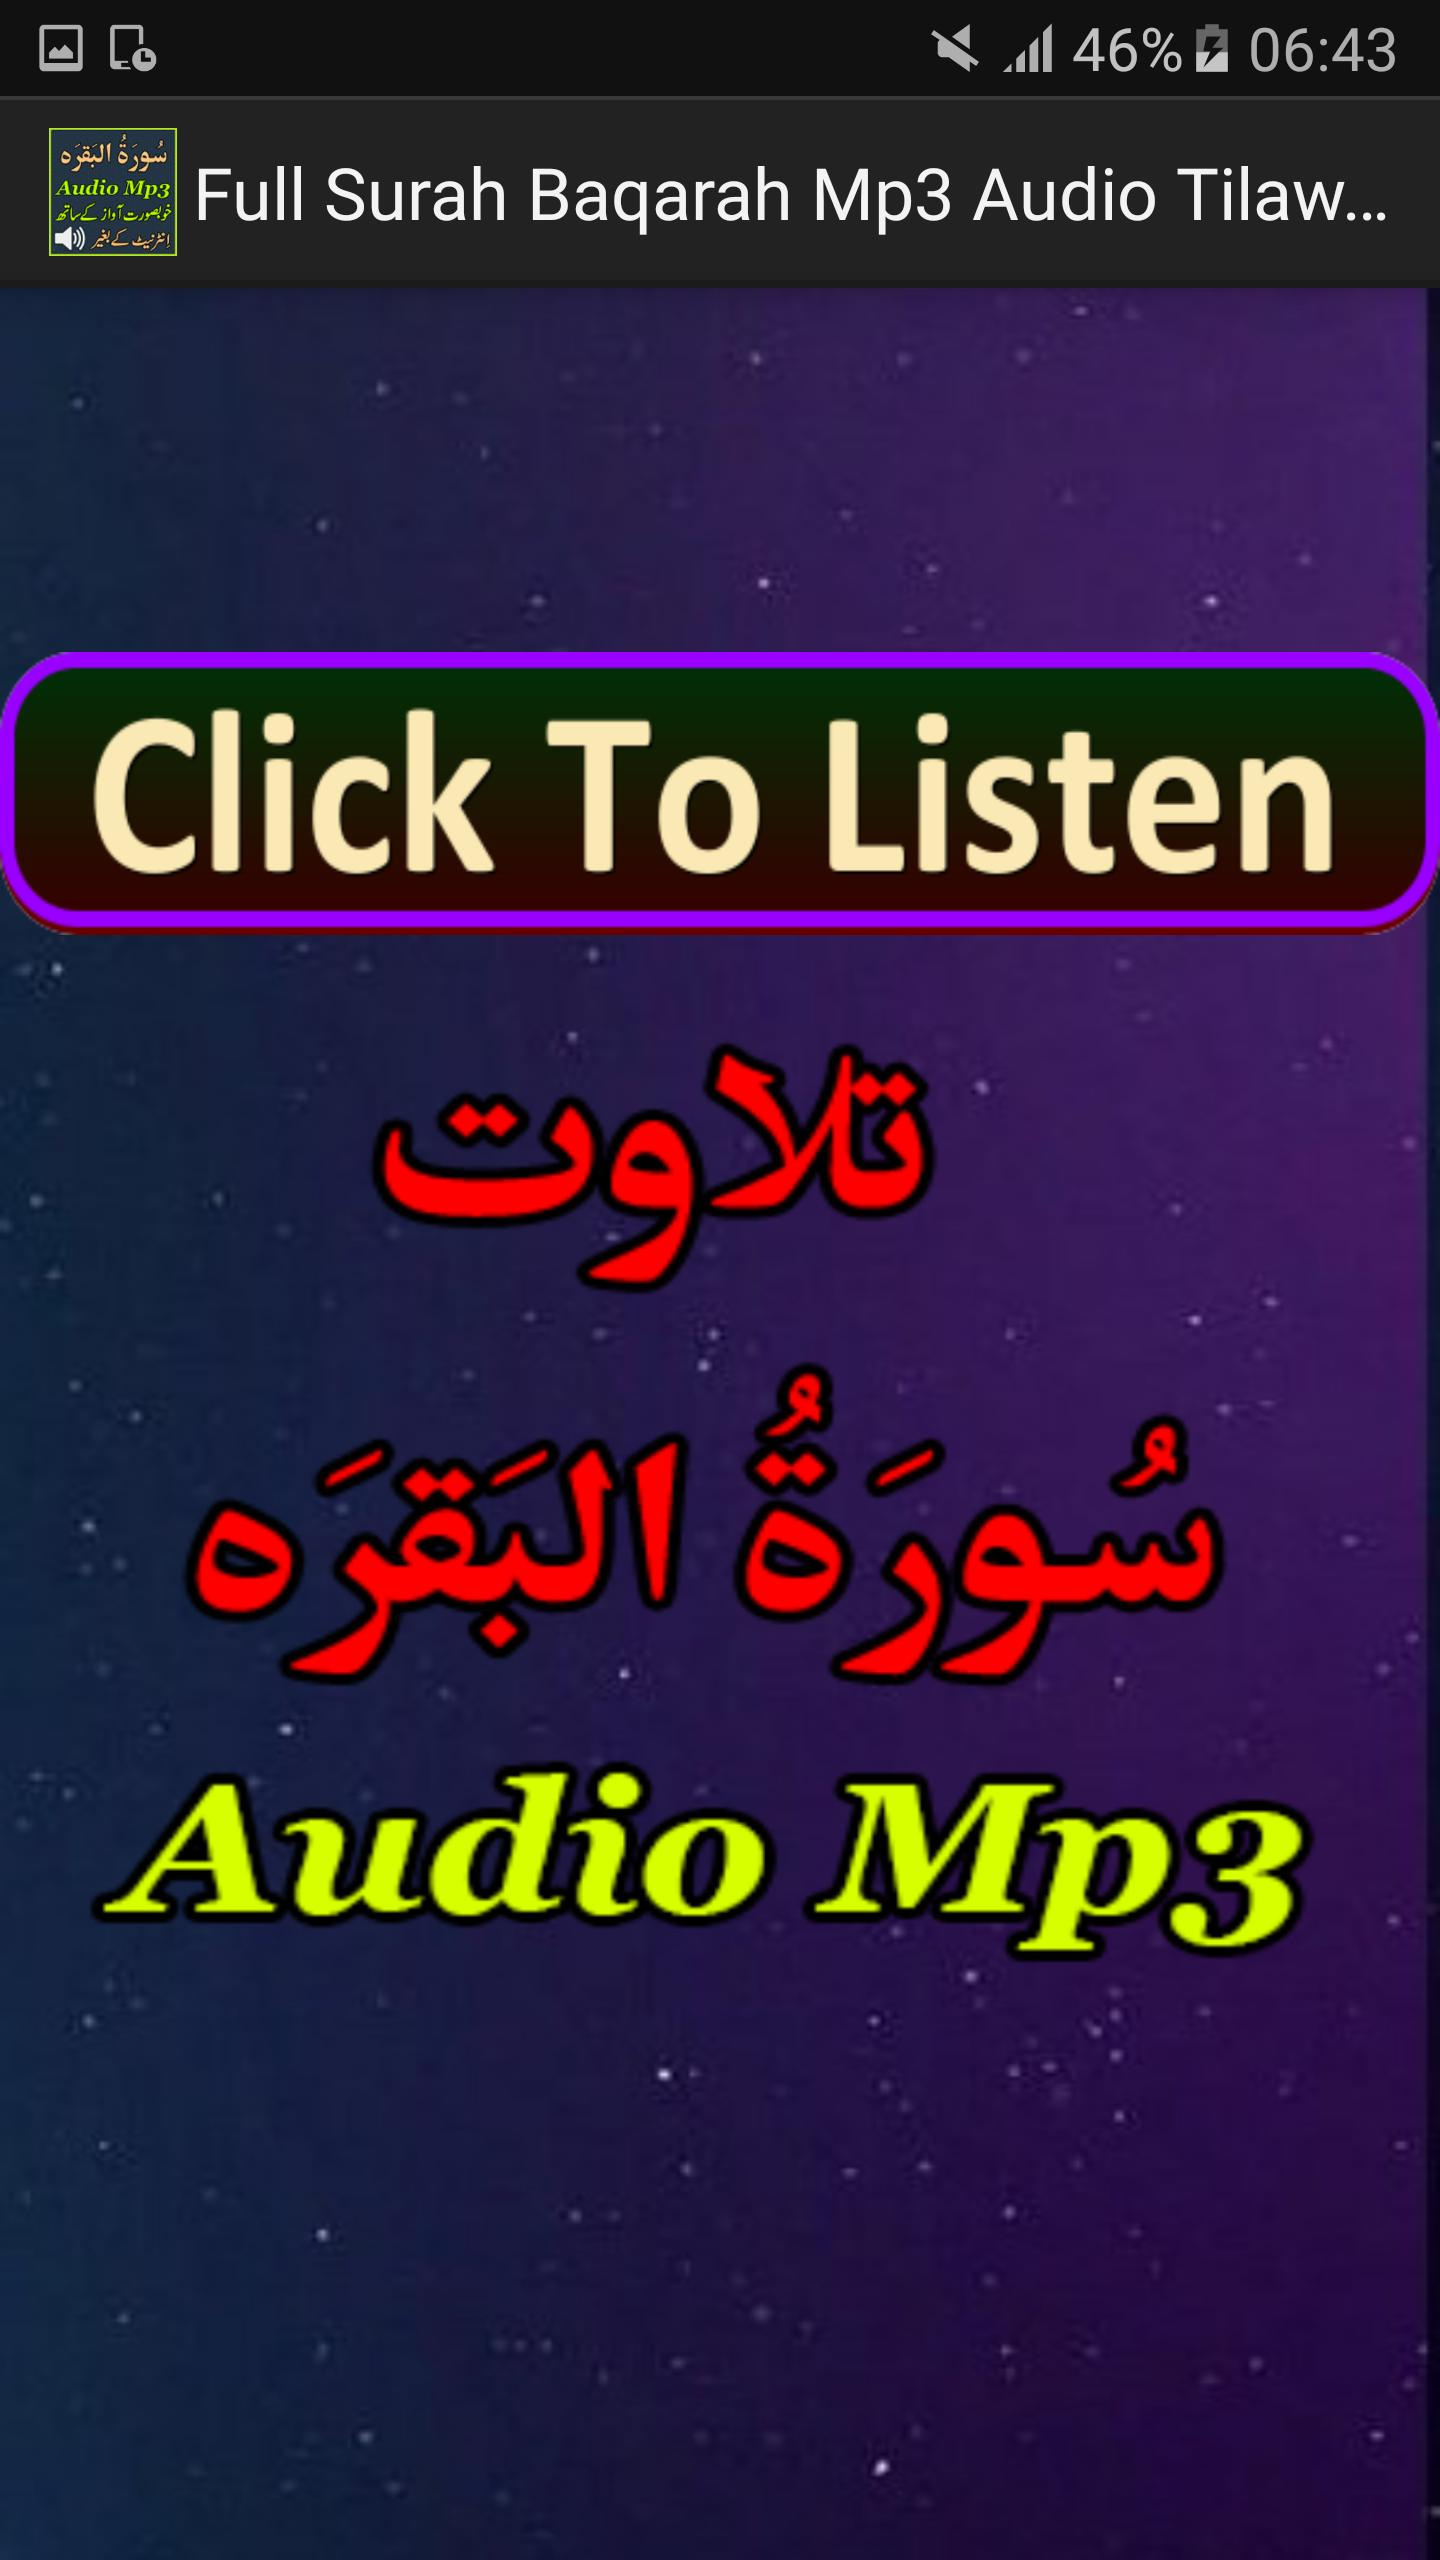 Full Surah Baqarah Mp3 Audio for Android - APK Download